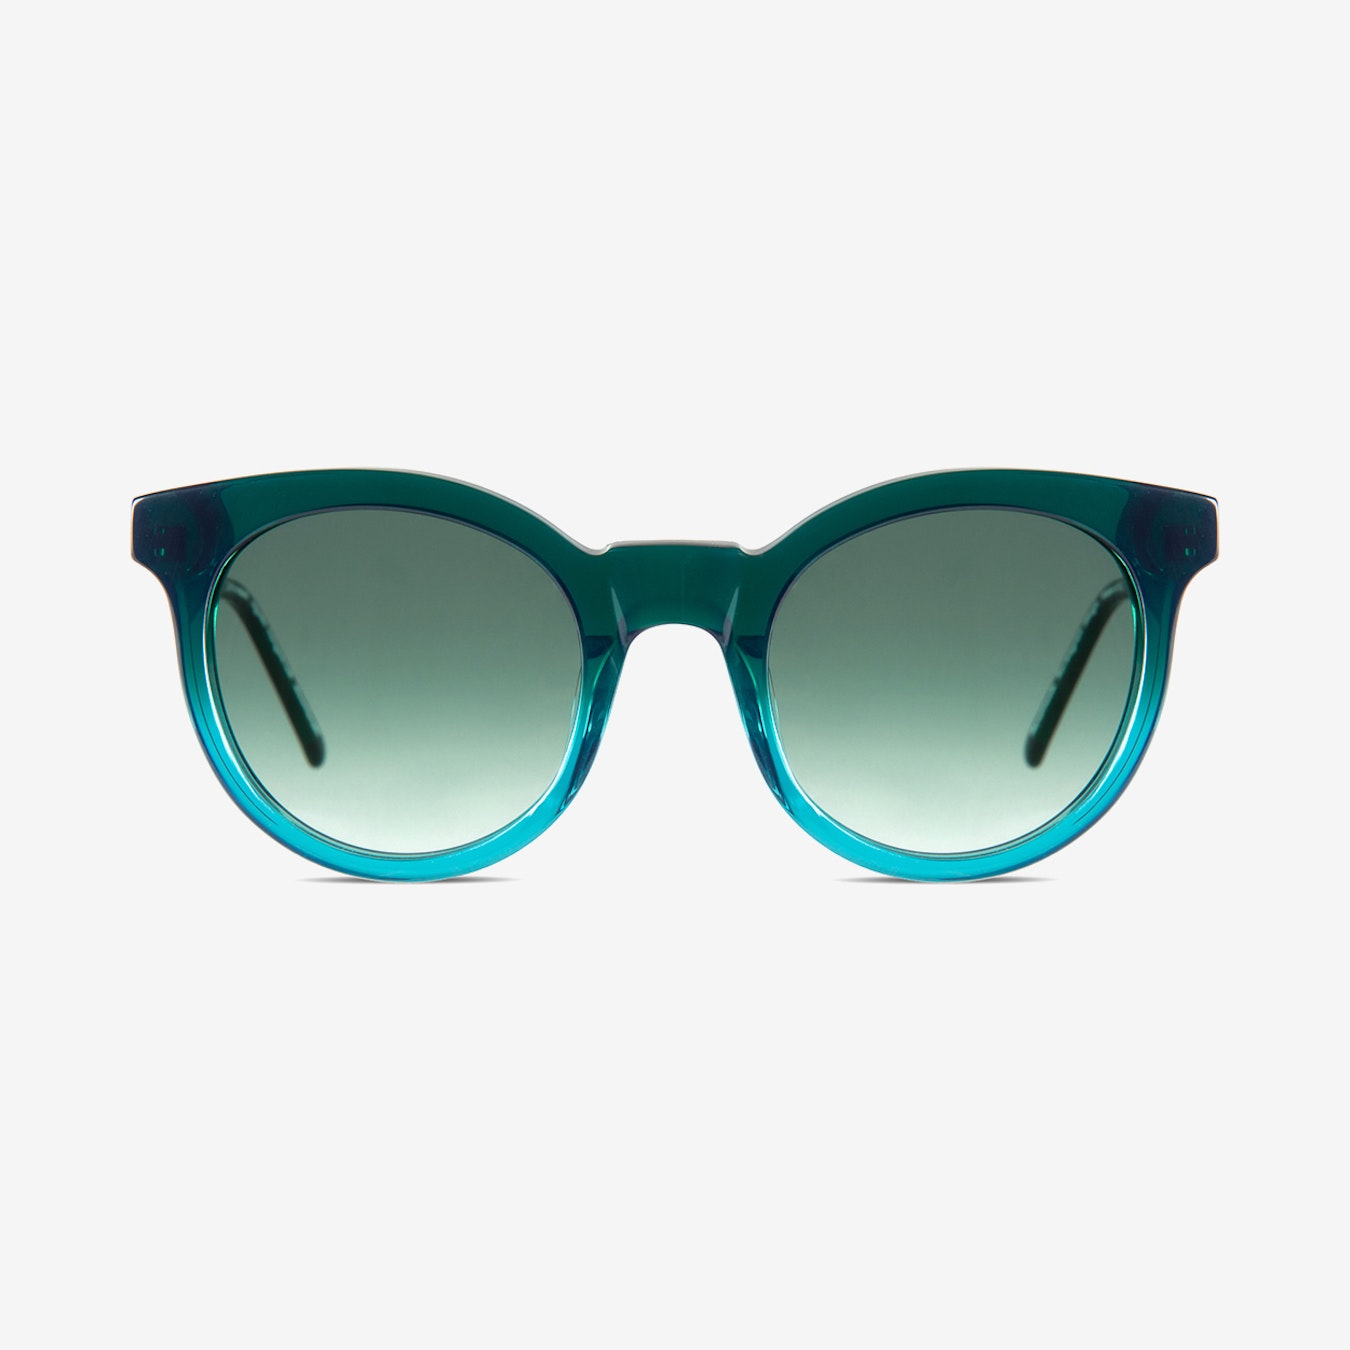 GAFAS KAIBOSH UNKNOWN DESTINATION VERDE